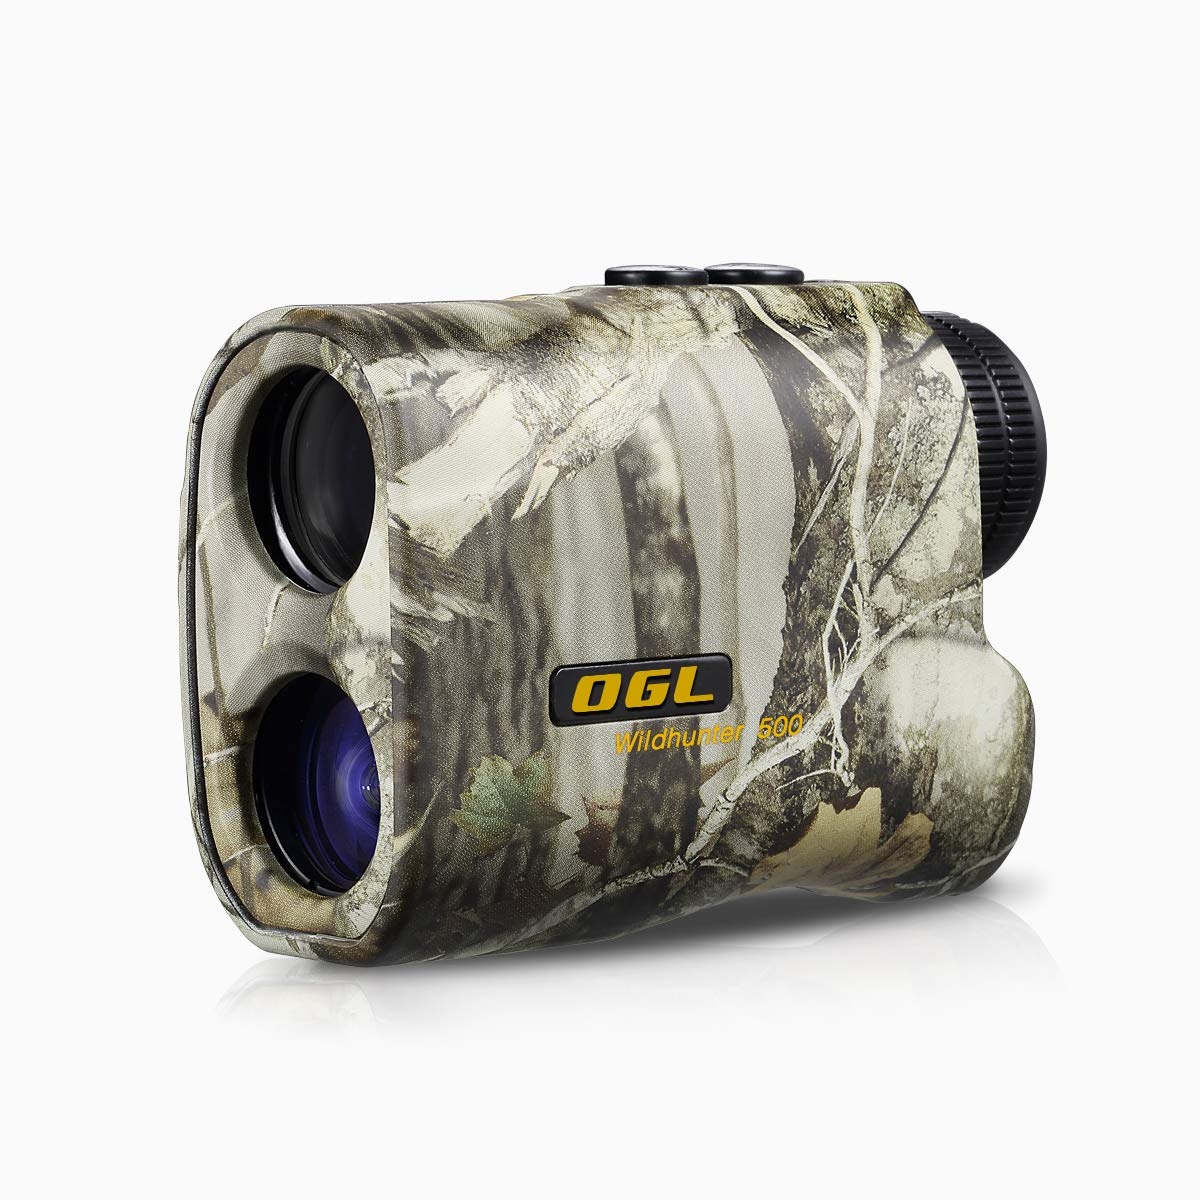 OGL Hunting Rangefinder 6X Pro Laser Range Finder Accurate Speed and Range Mode with Scan 540 Yards Monocular with LCD Display Wild Hunter 500 by OGL